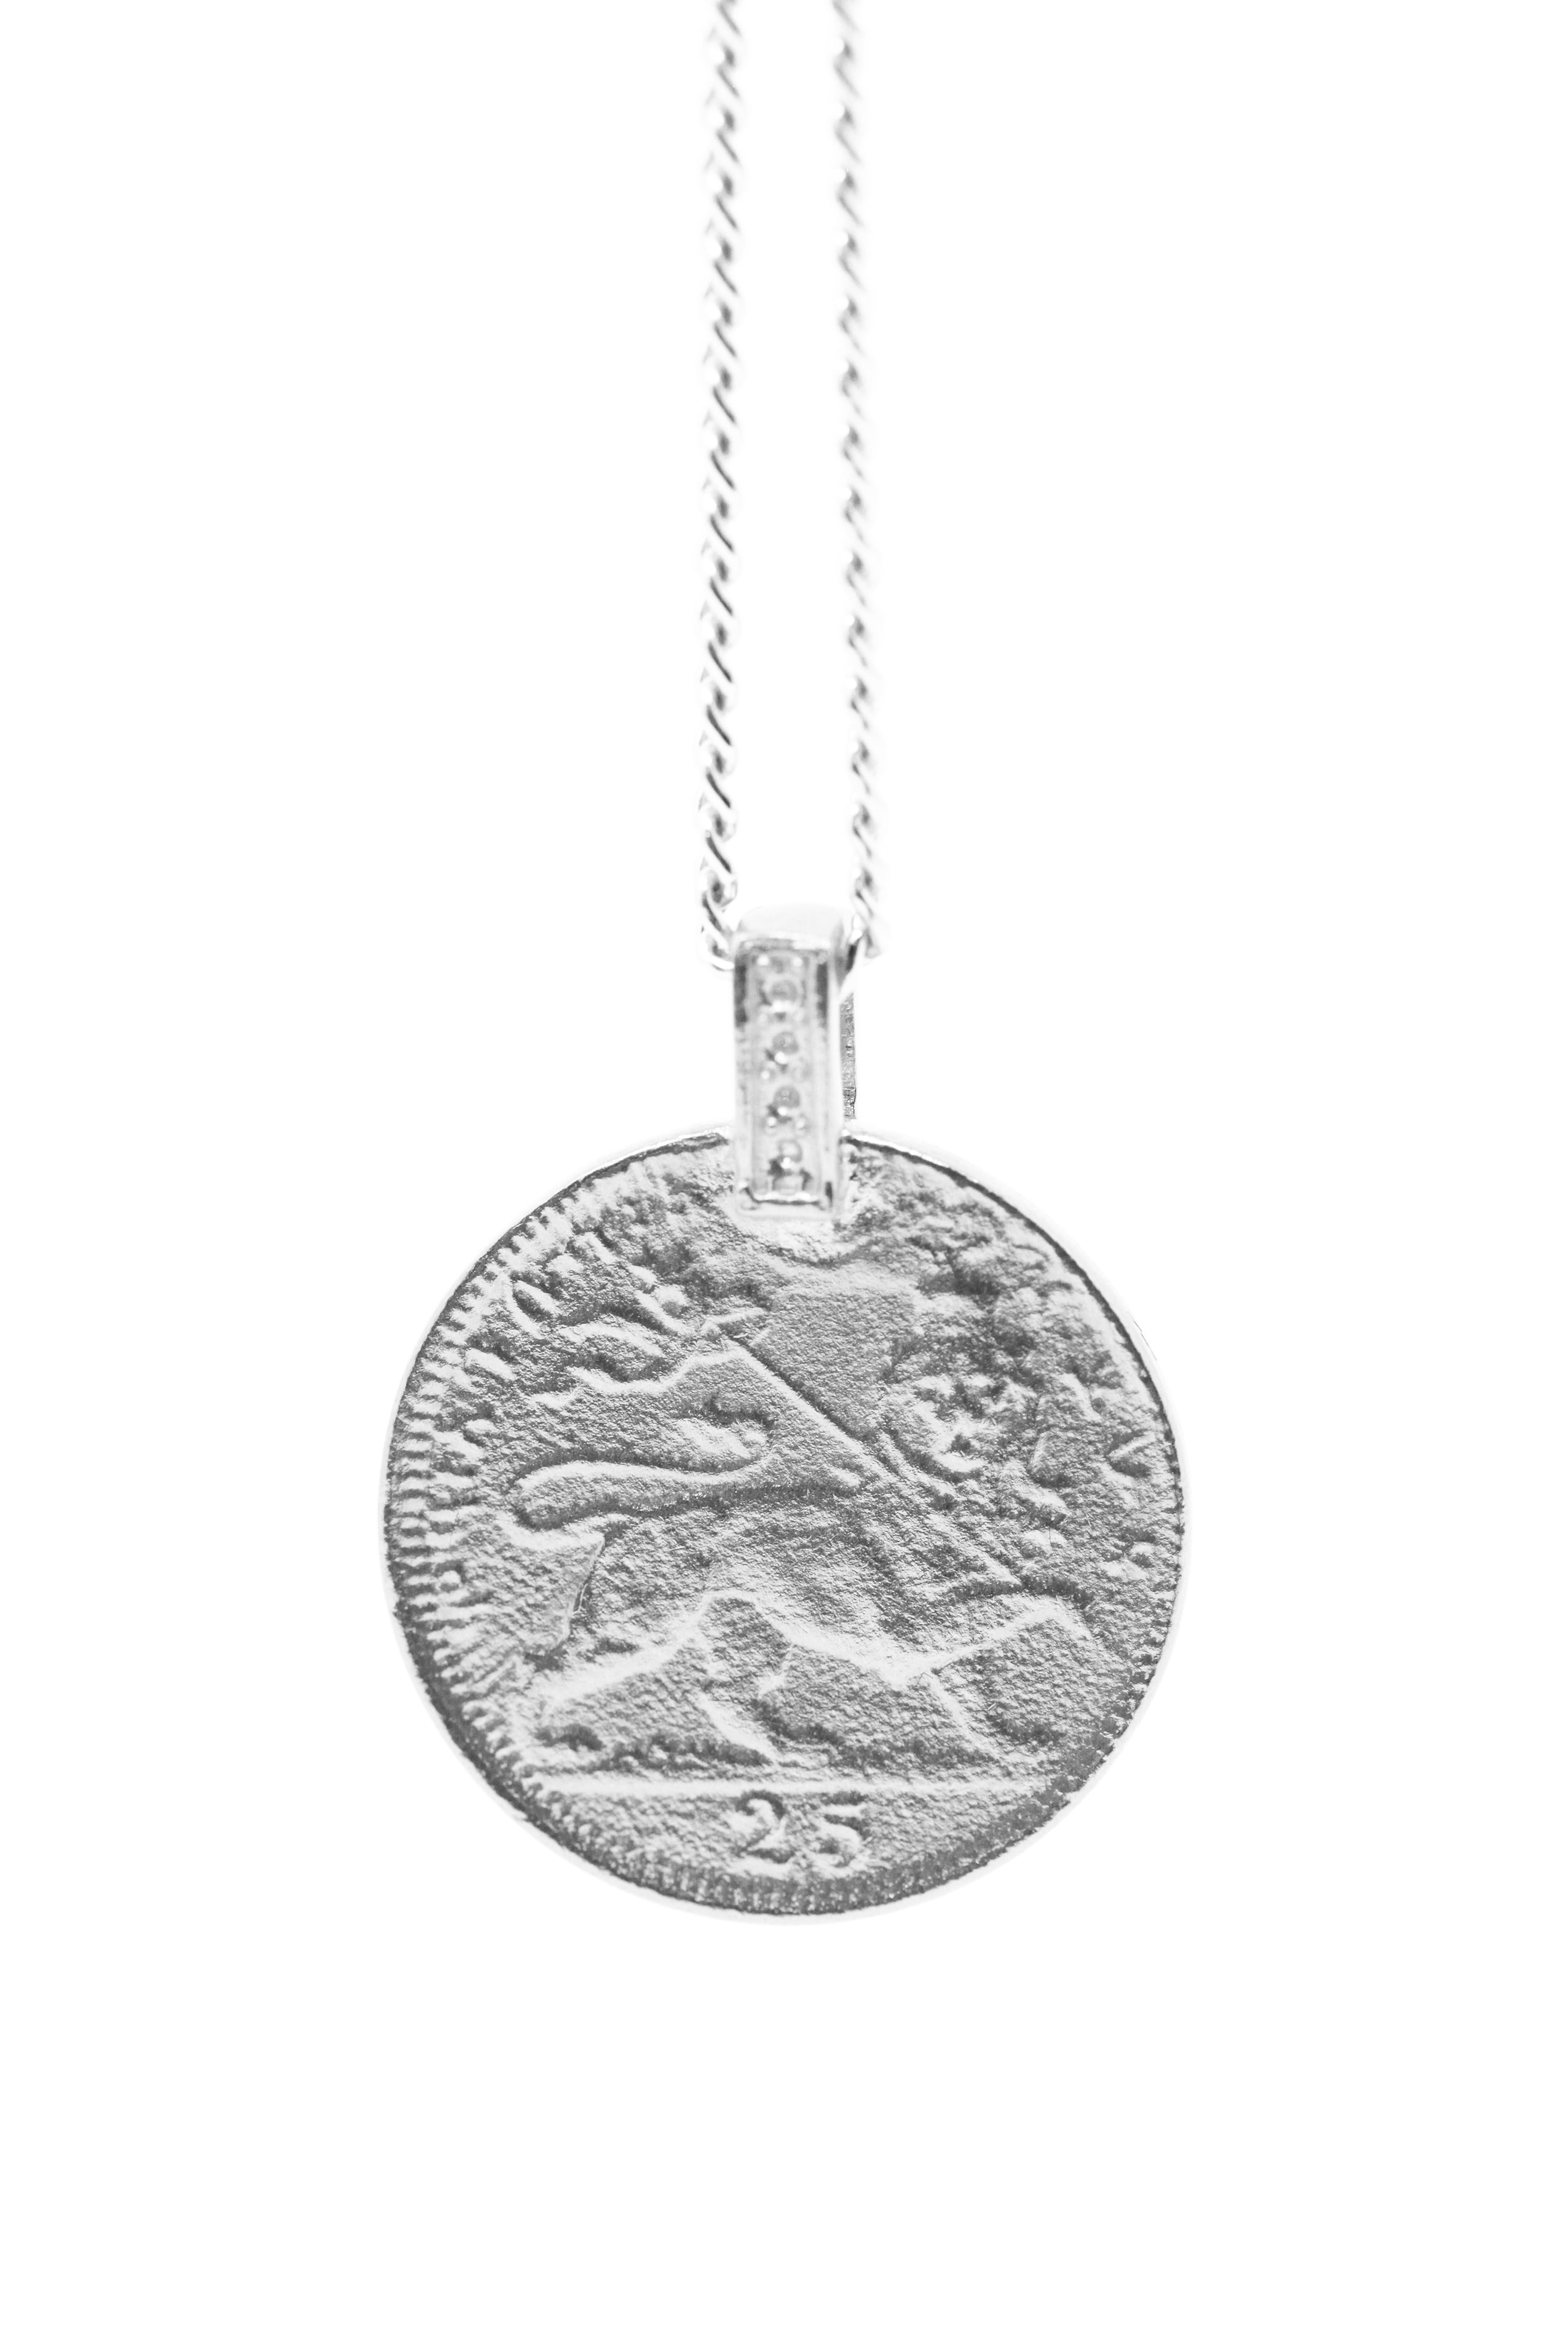 THE HAILE Selassie Coin Necklace